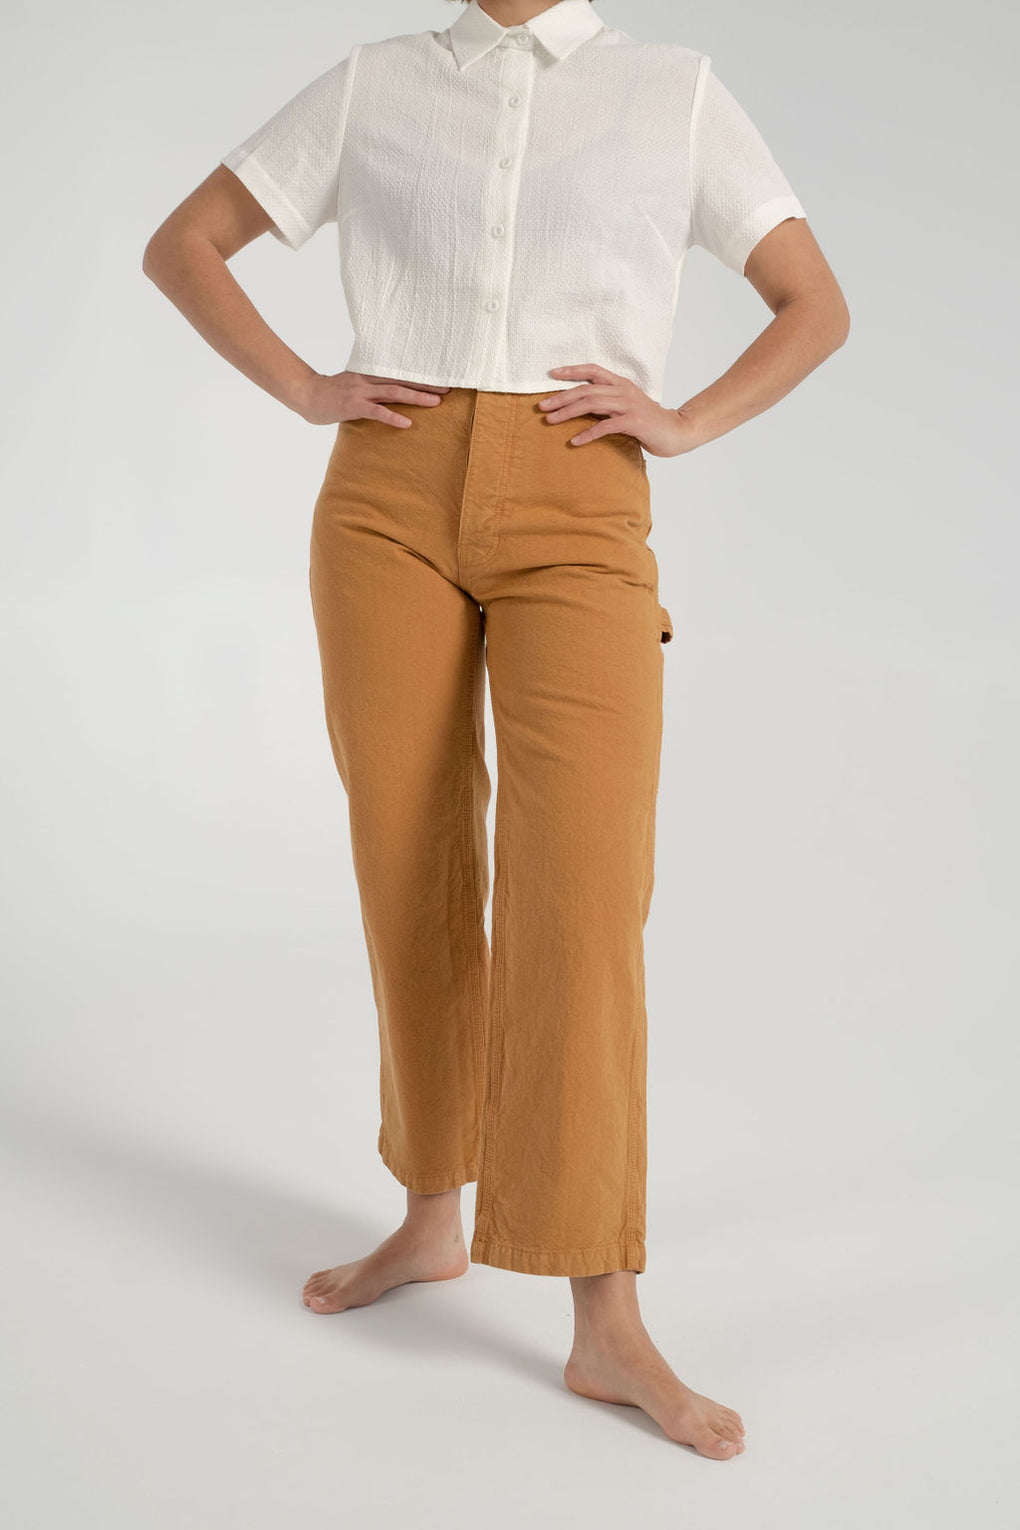 Jesse Kamm-Jesse Kamm Handy Pants-Kamm Handy Pants-Cork Handy Pants-Idun-St. Paul